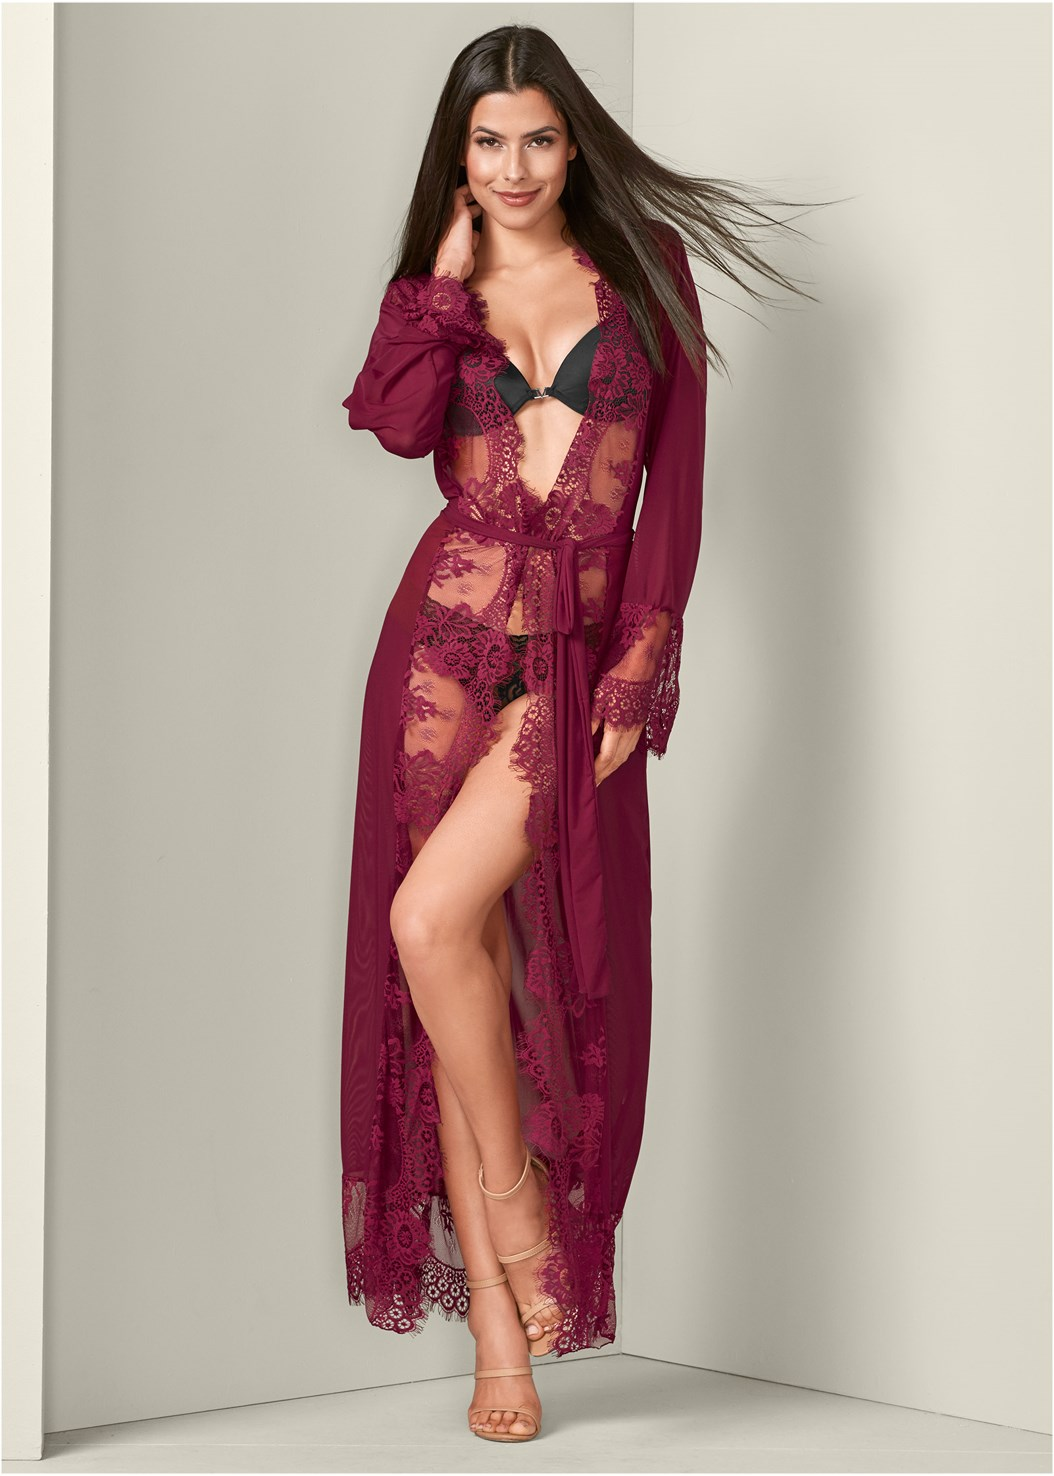 Mesh Robe With Lace Trim,High Heel Strappy Sandals